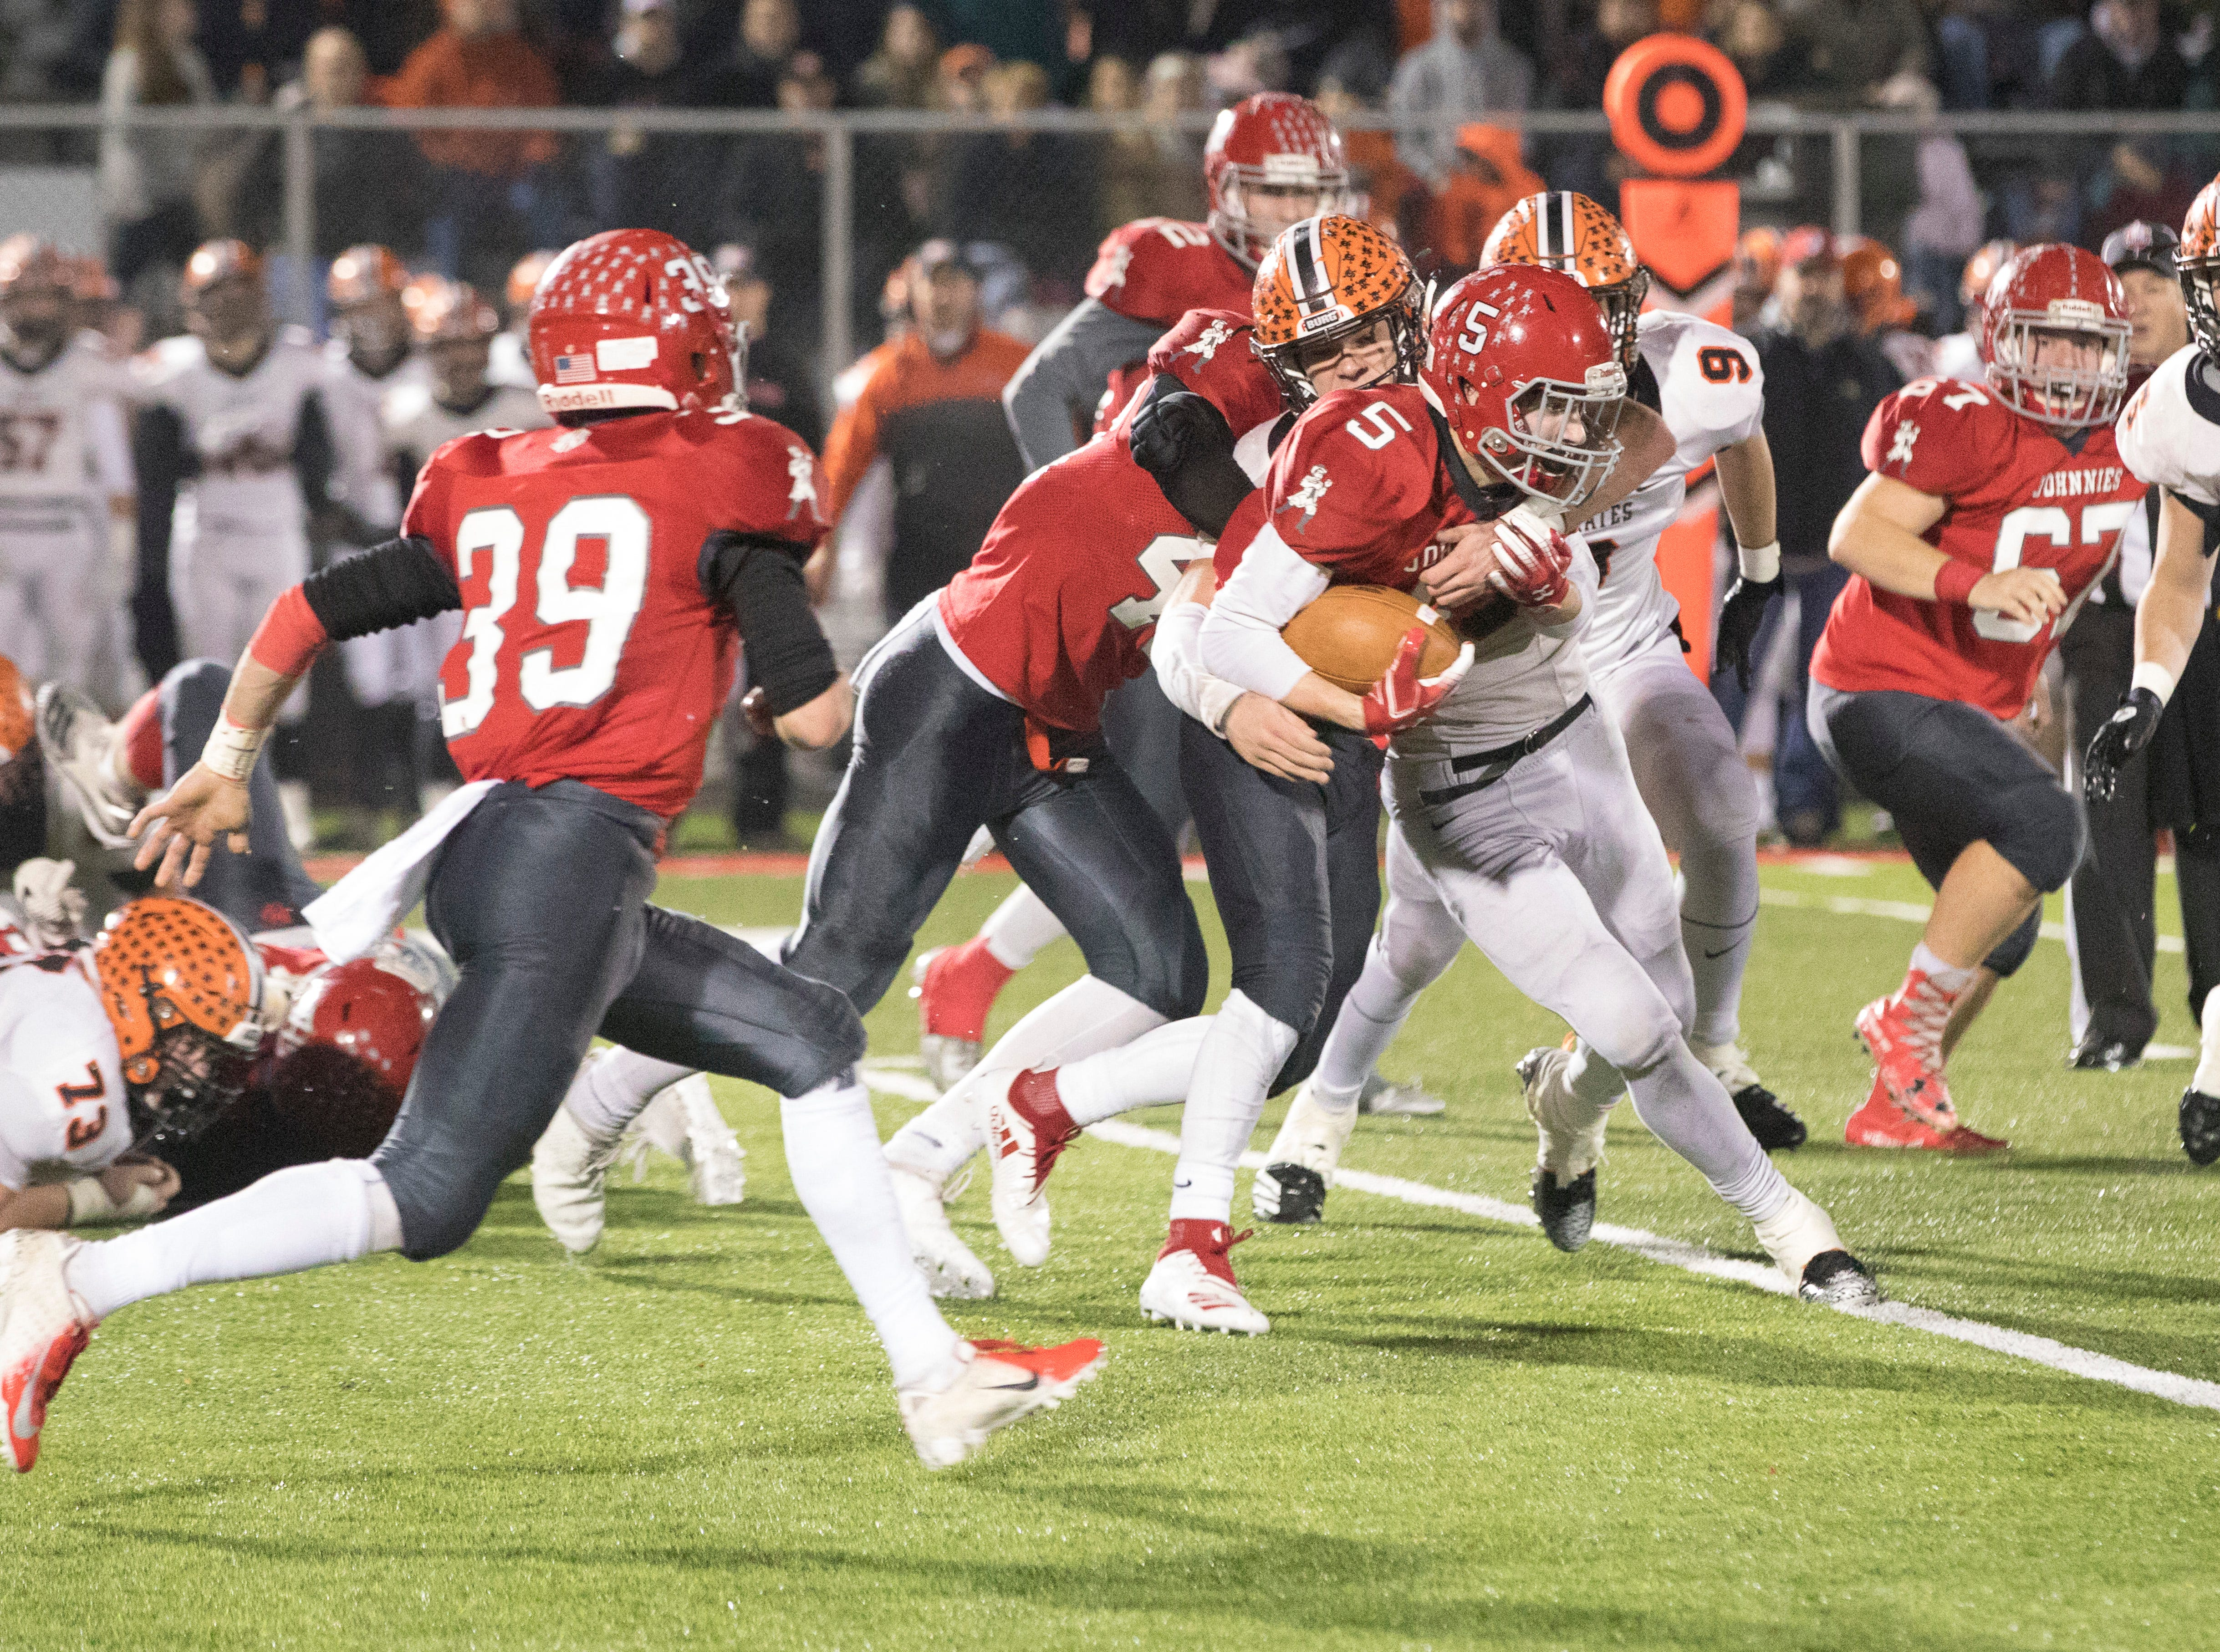 Johnstown advanced to its first state final in program history with a 32-14 victory against Wheelersburg.